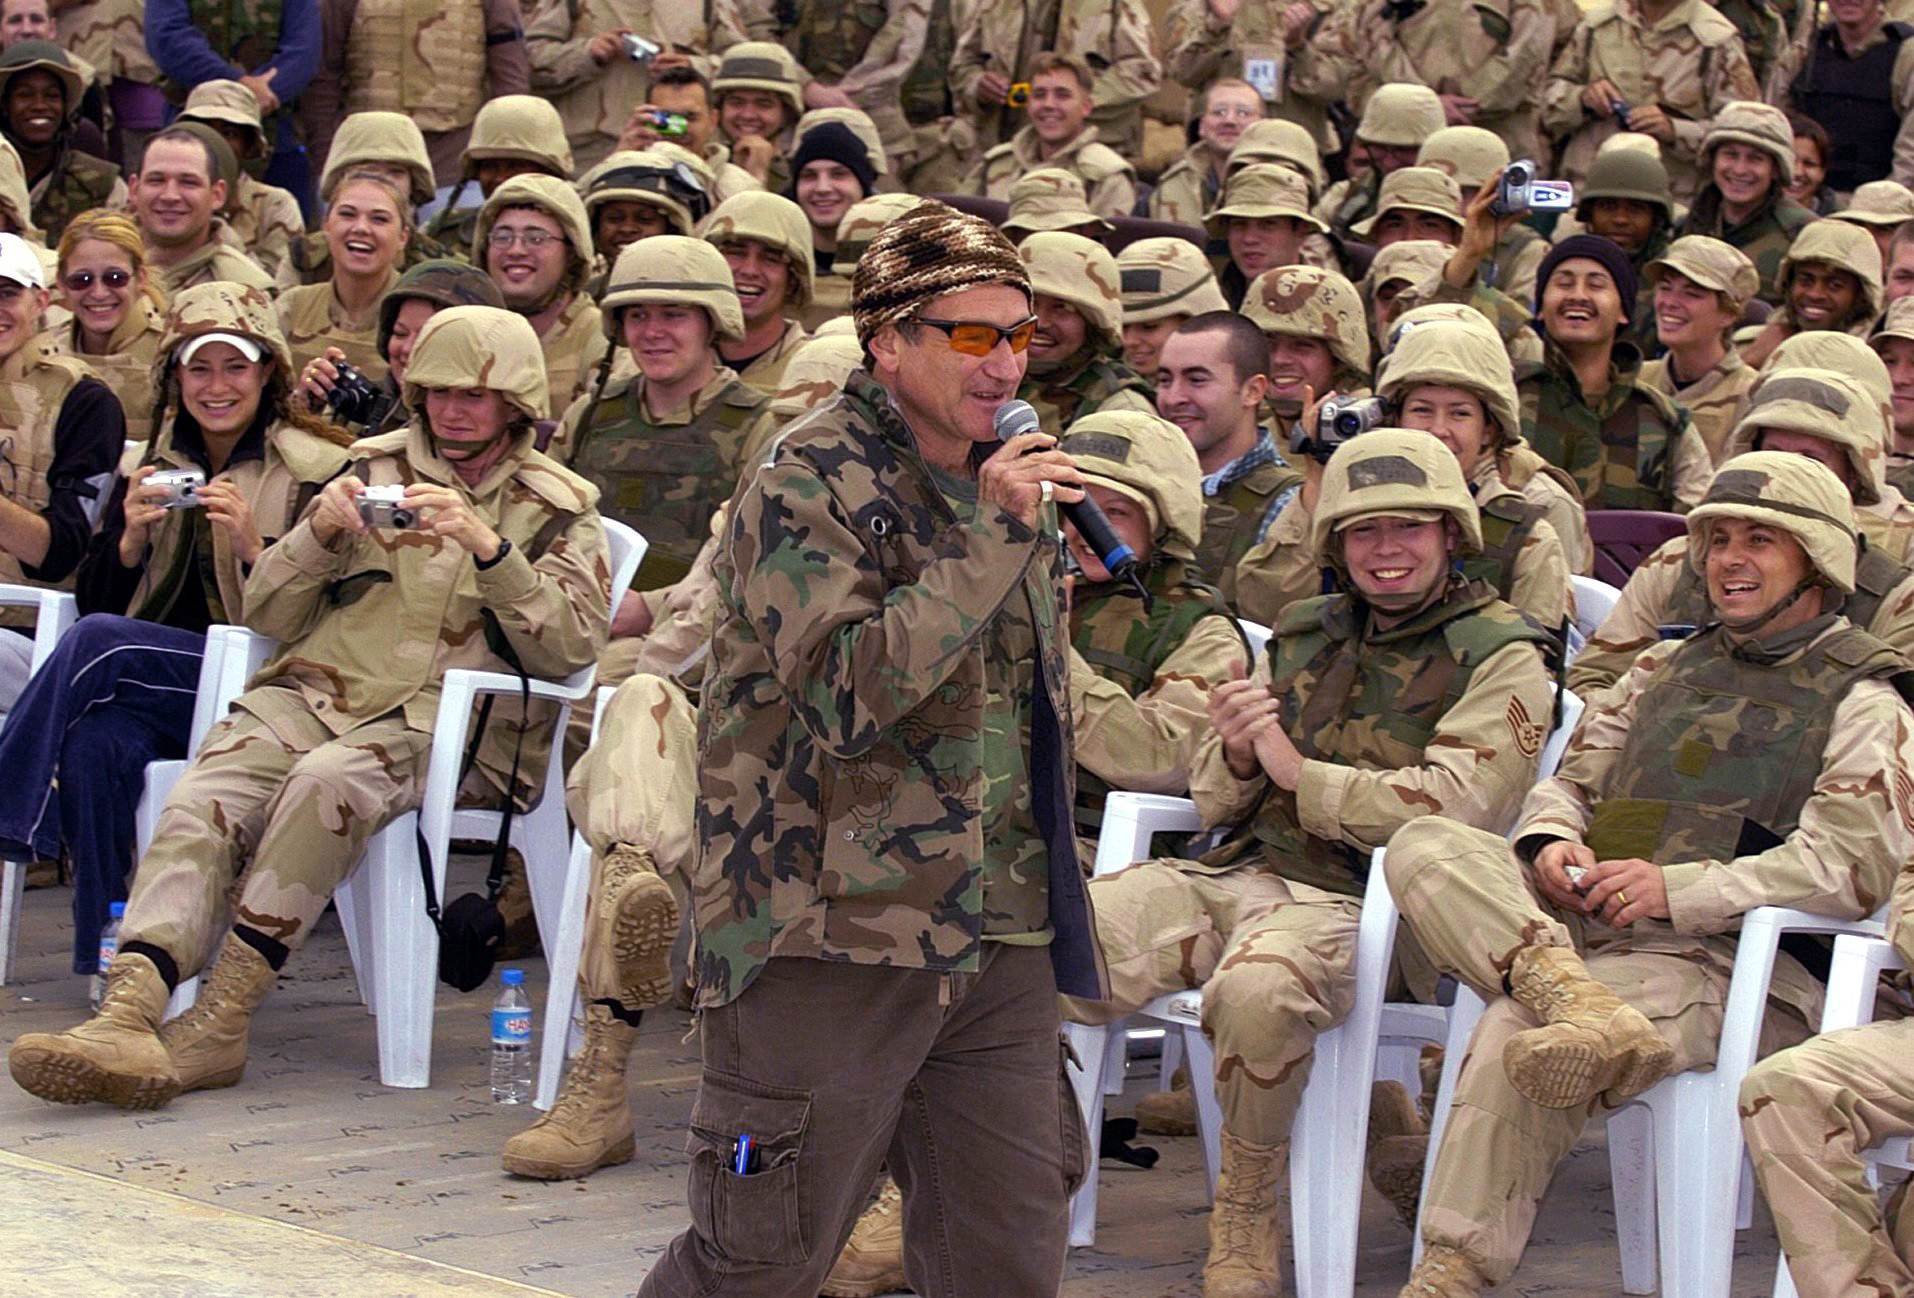 Robin Williams wears a camouflage jacket while entertaining a cheering crowd of US troops as part of a United Service Organiztions (USO) Holiday Tour at the International Airport in Baghdad, Dec. 16, 2003.